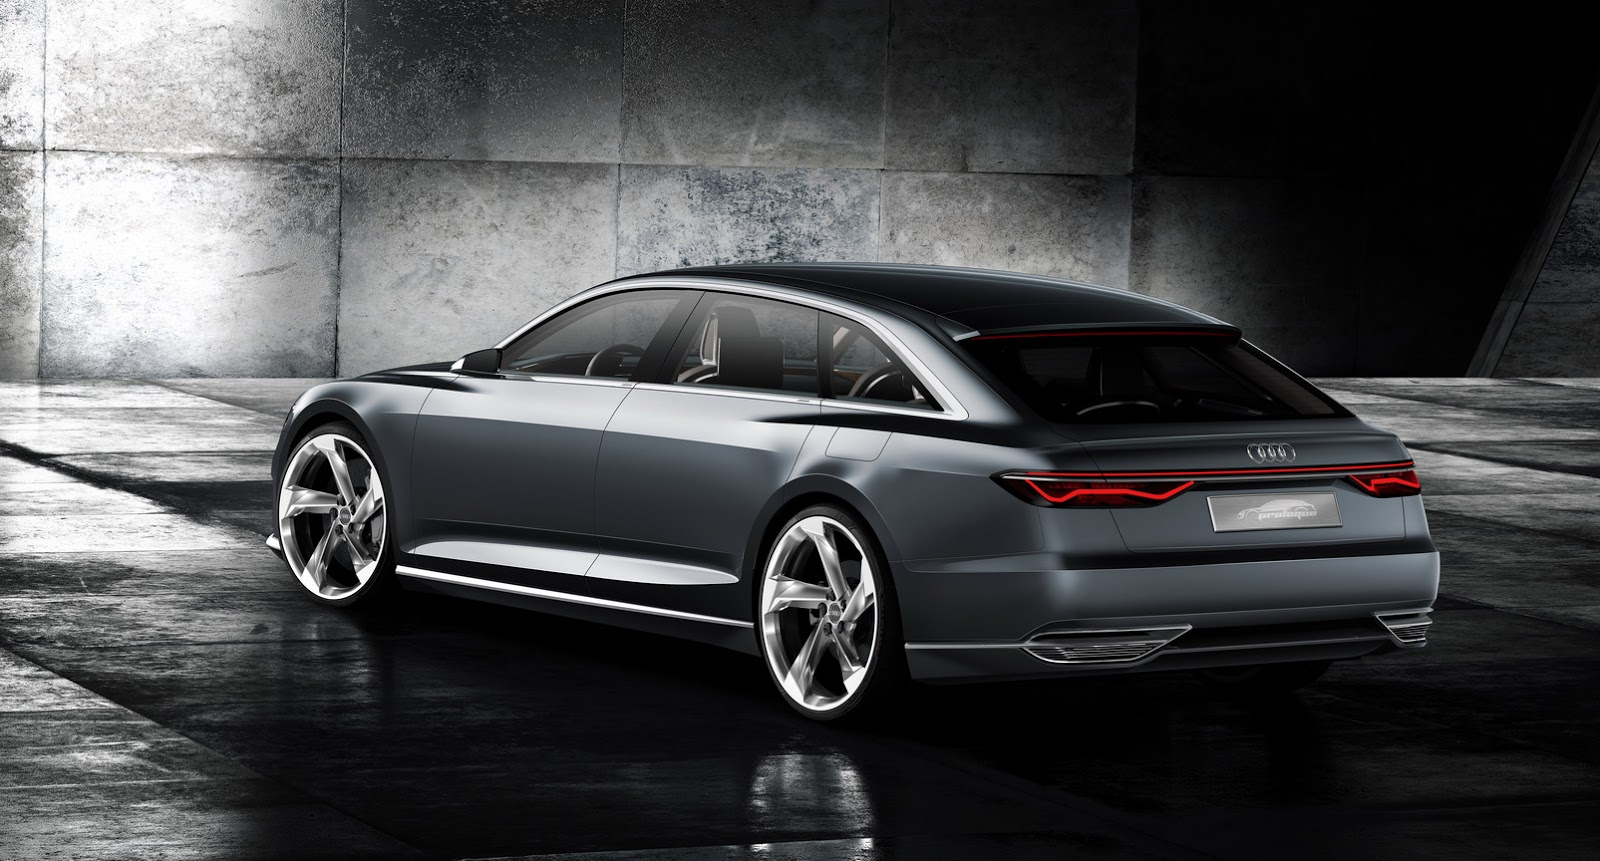 2018 audi electric car. modren electric 2015 audi prologue avant concept rear  intended 2018 audi electric car